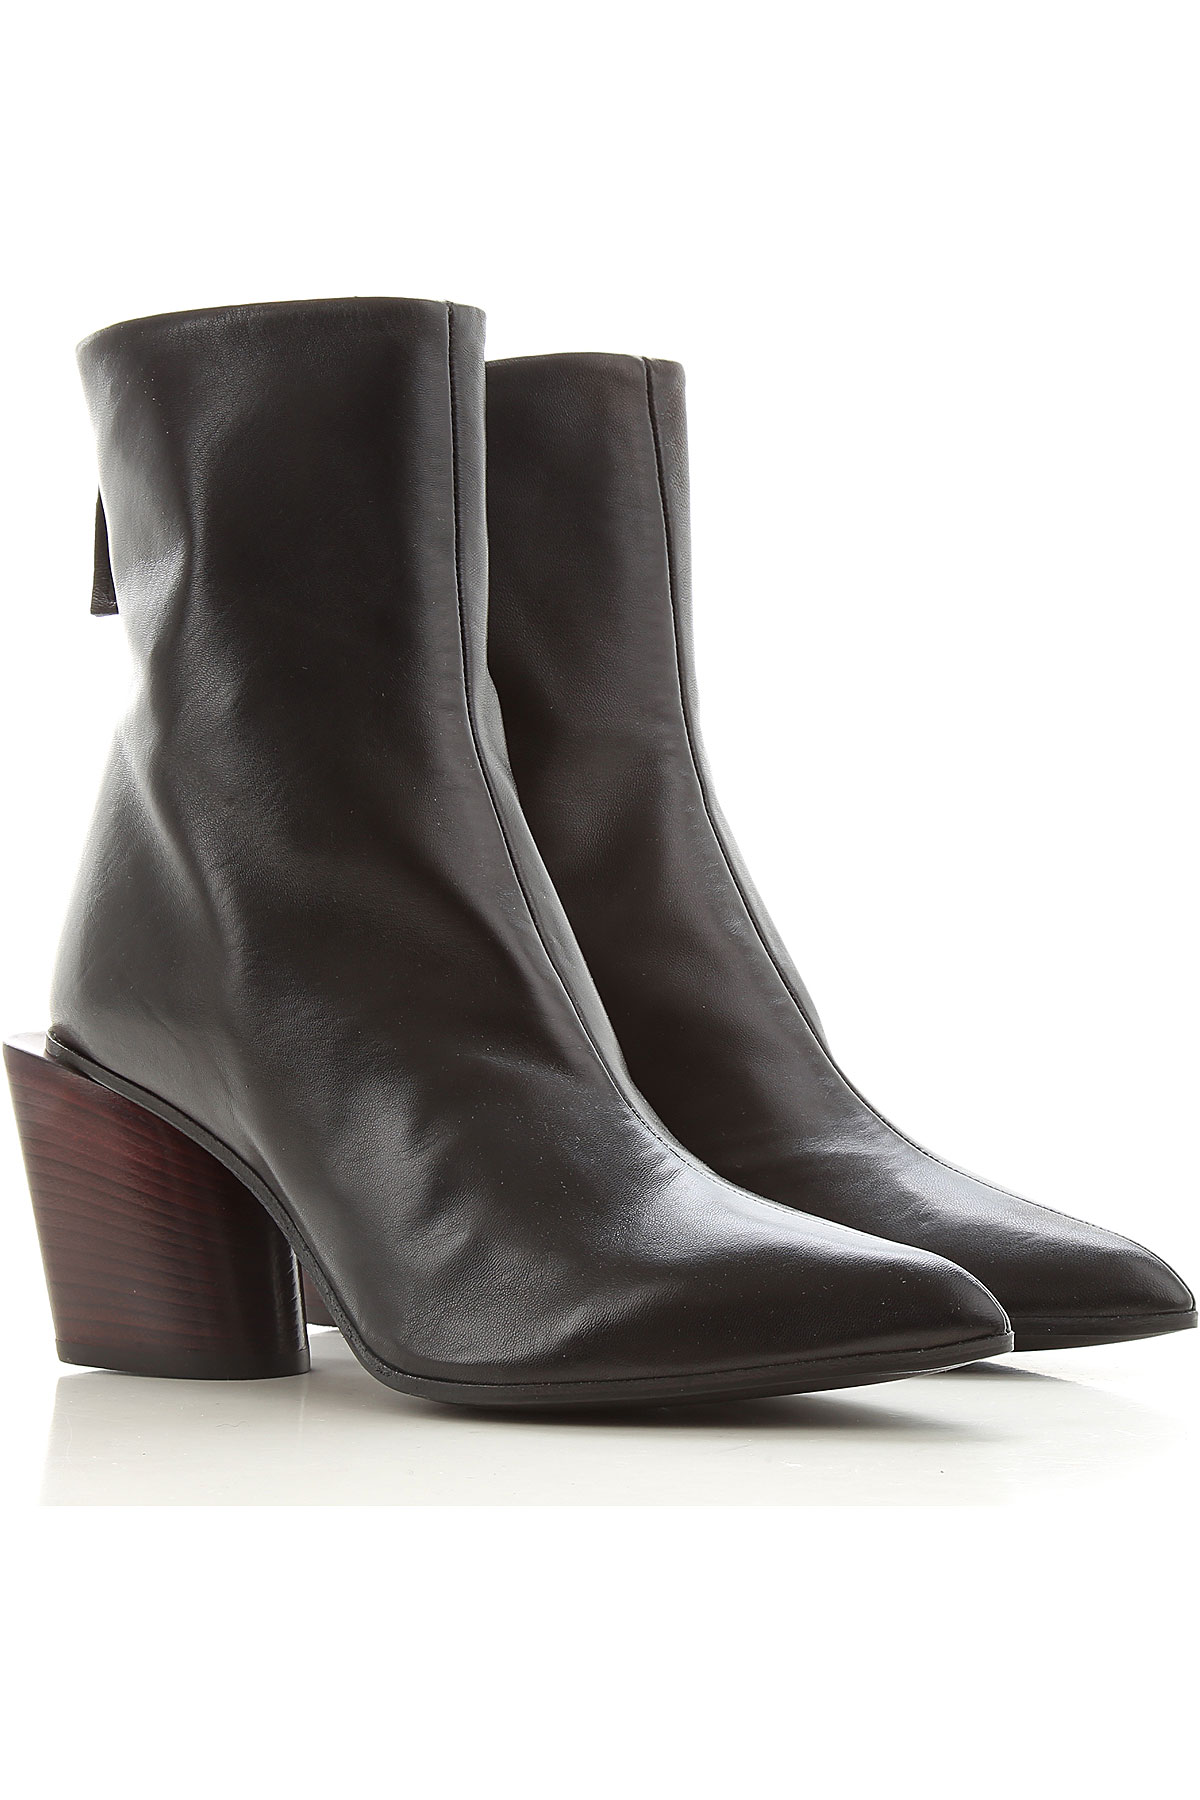 Halmanera Boots for Women, Booties, Black, Leather, 2019, 7 9